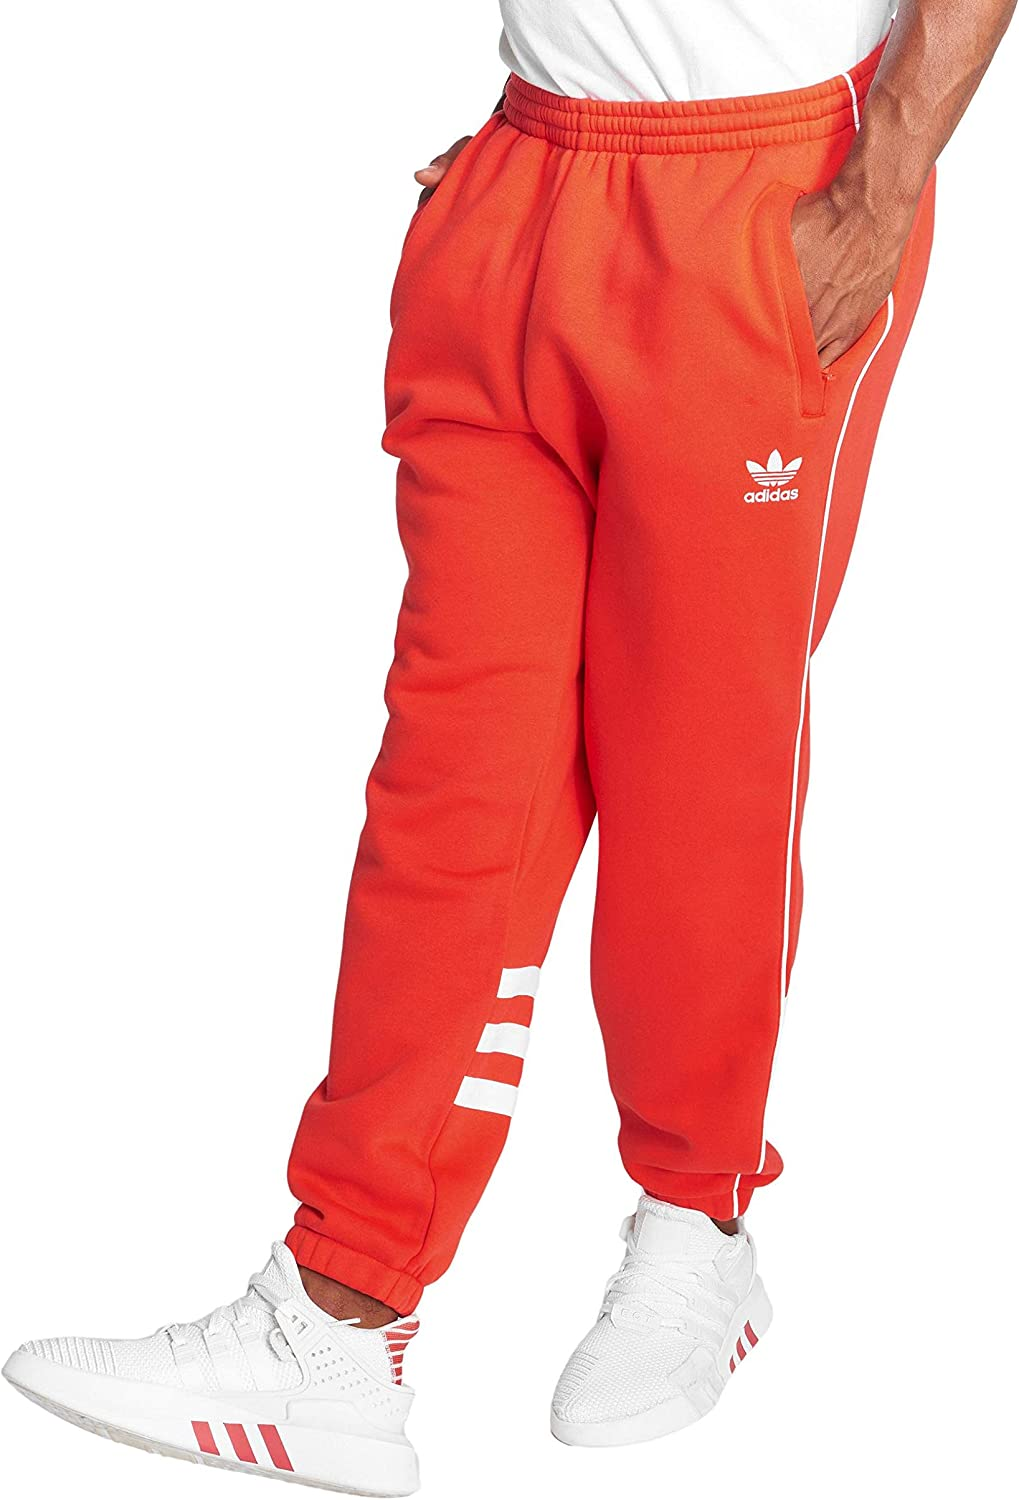 Adidas Hosen – Auth Sweat rot wei Gre  S (Small)